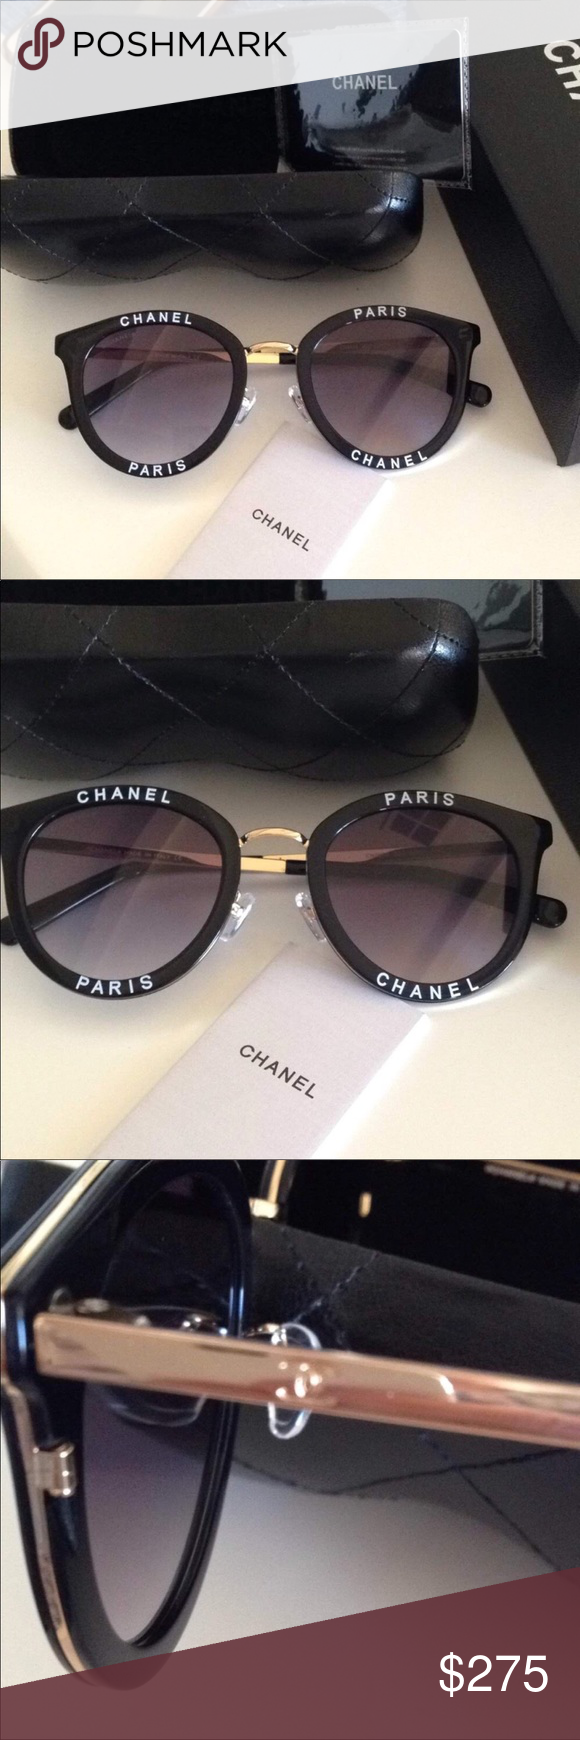 5732a8c0be48 NWT Chanel sunglasses Brand new sunglasses with a box and case CHANEL  Accessories Sunglasses